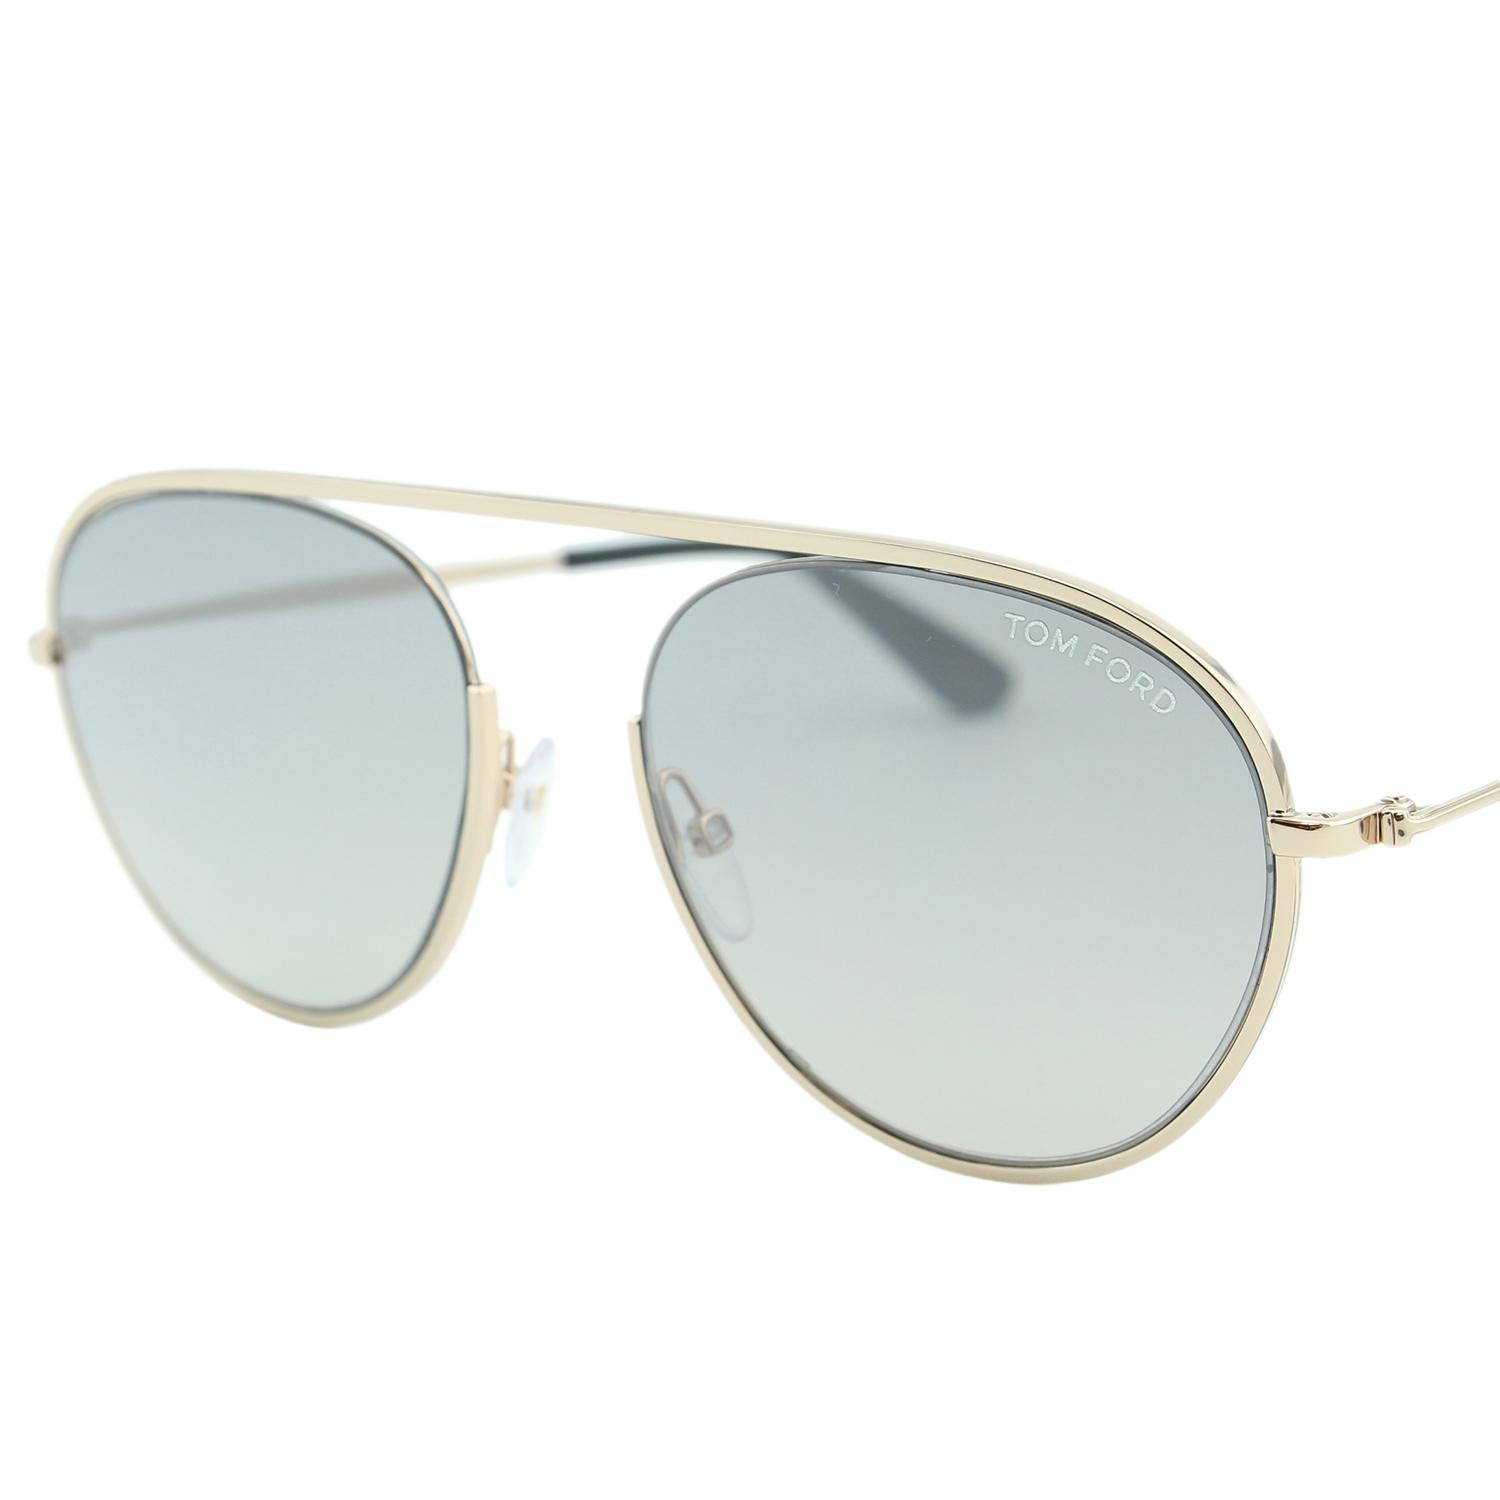 Tom Ford Ft 0599 S 28c 1 owpTNH